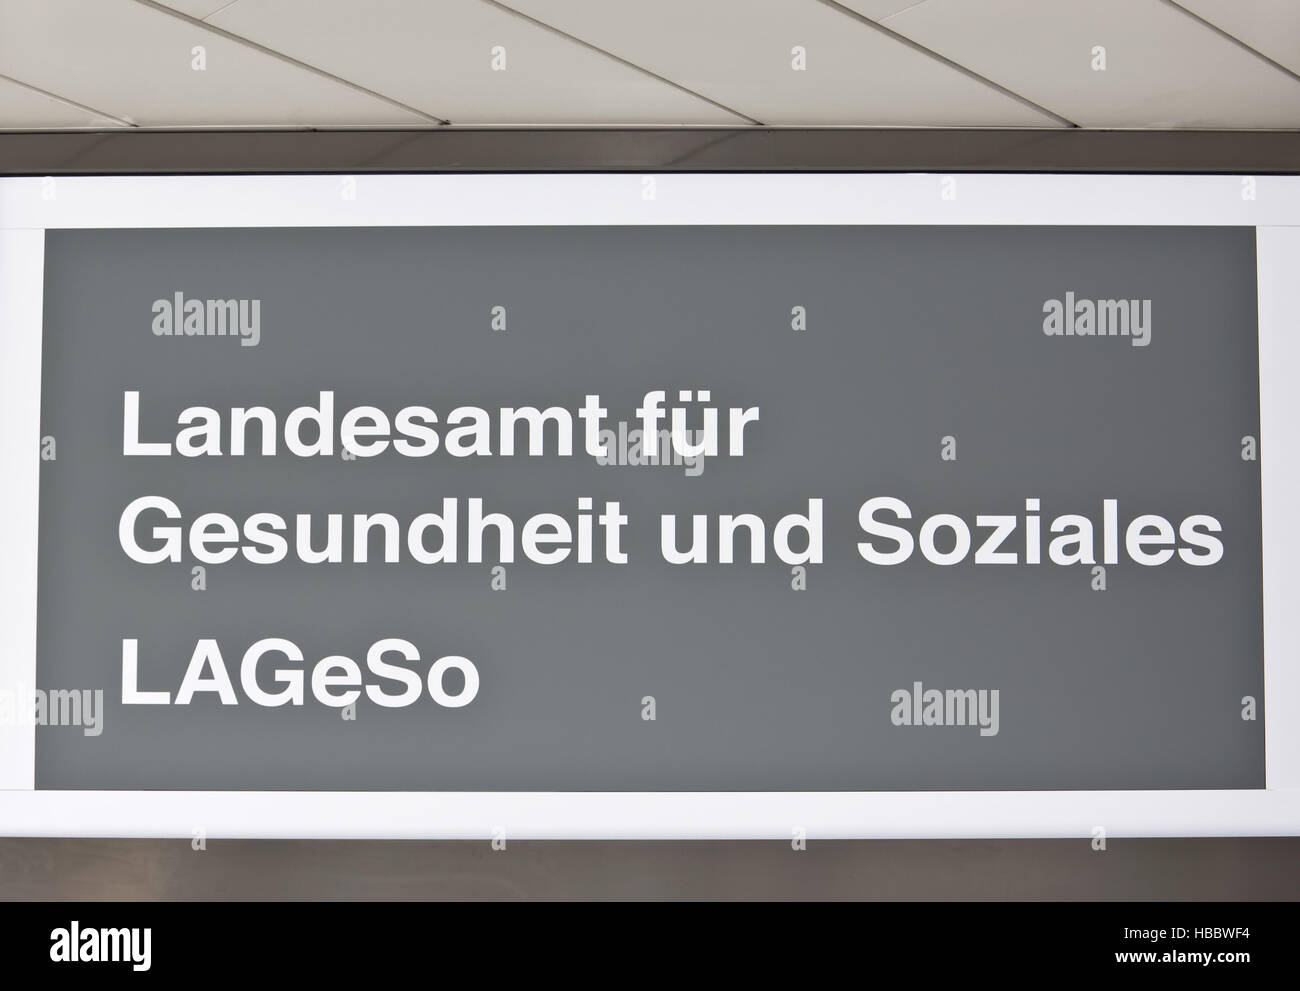 LAGeSo - Stock Image